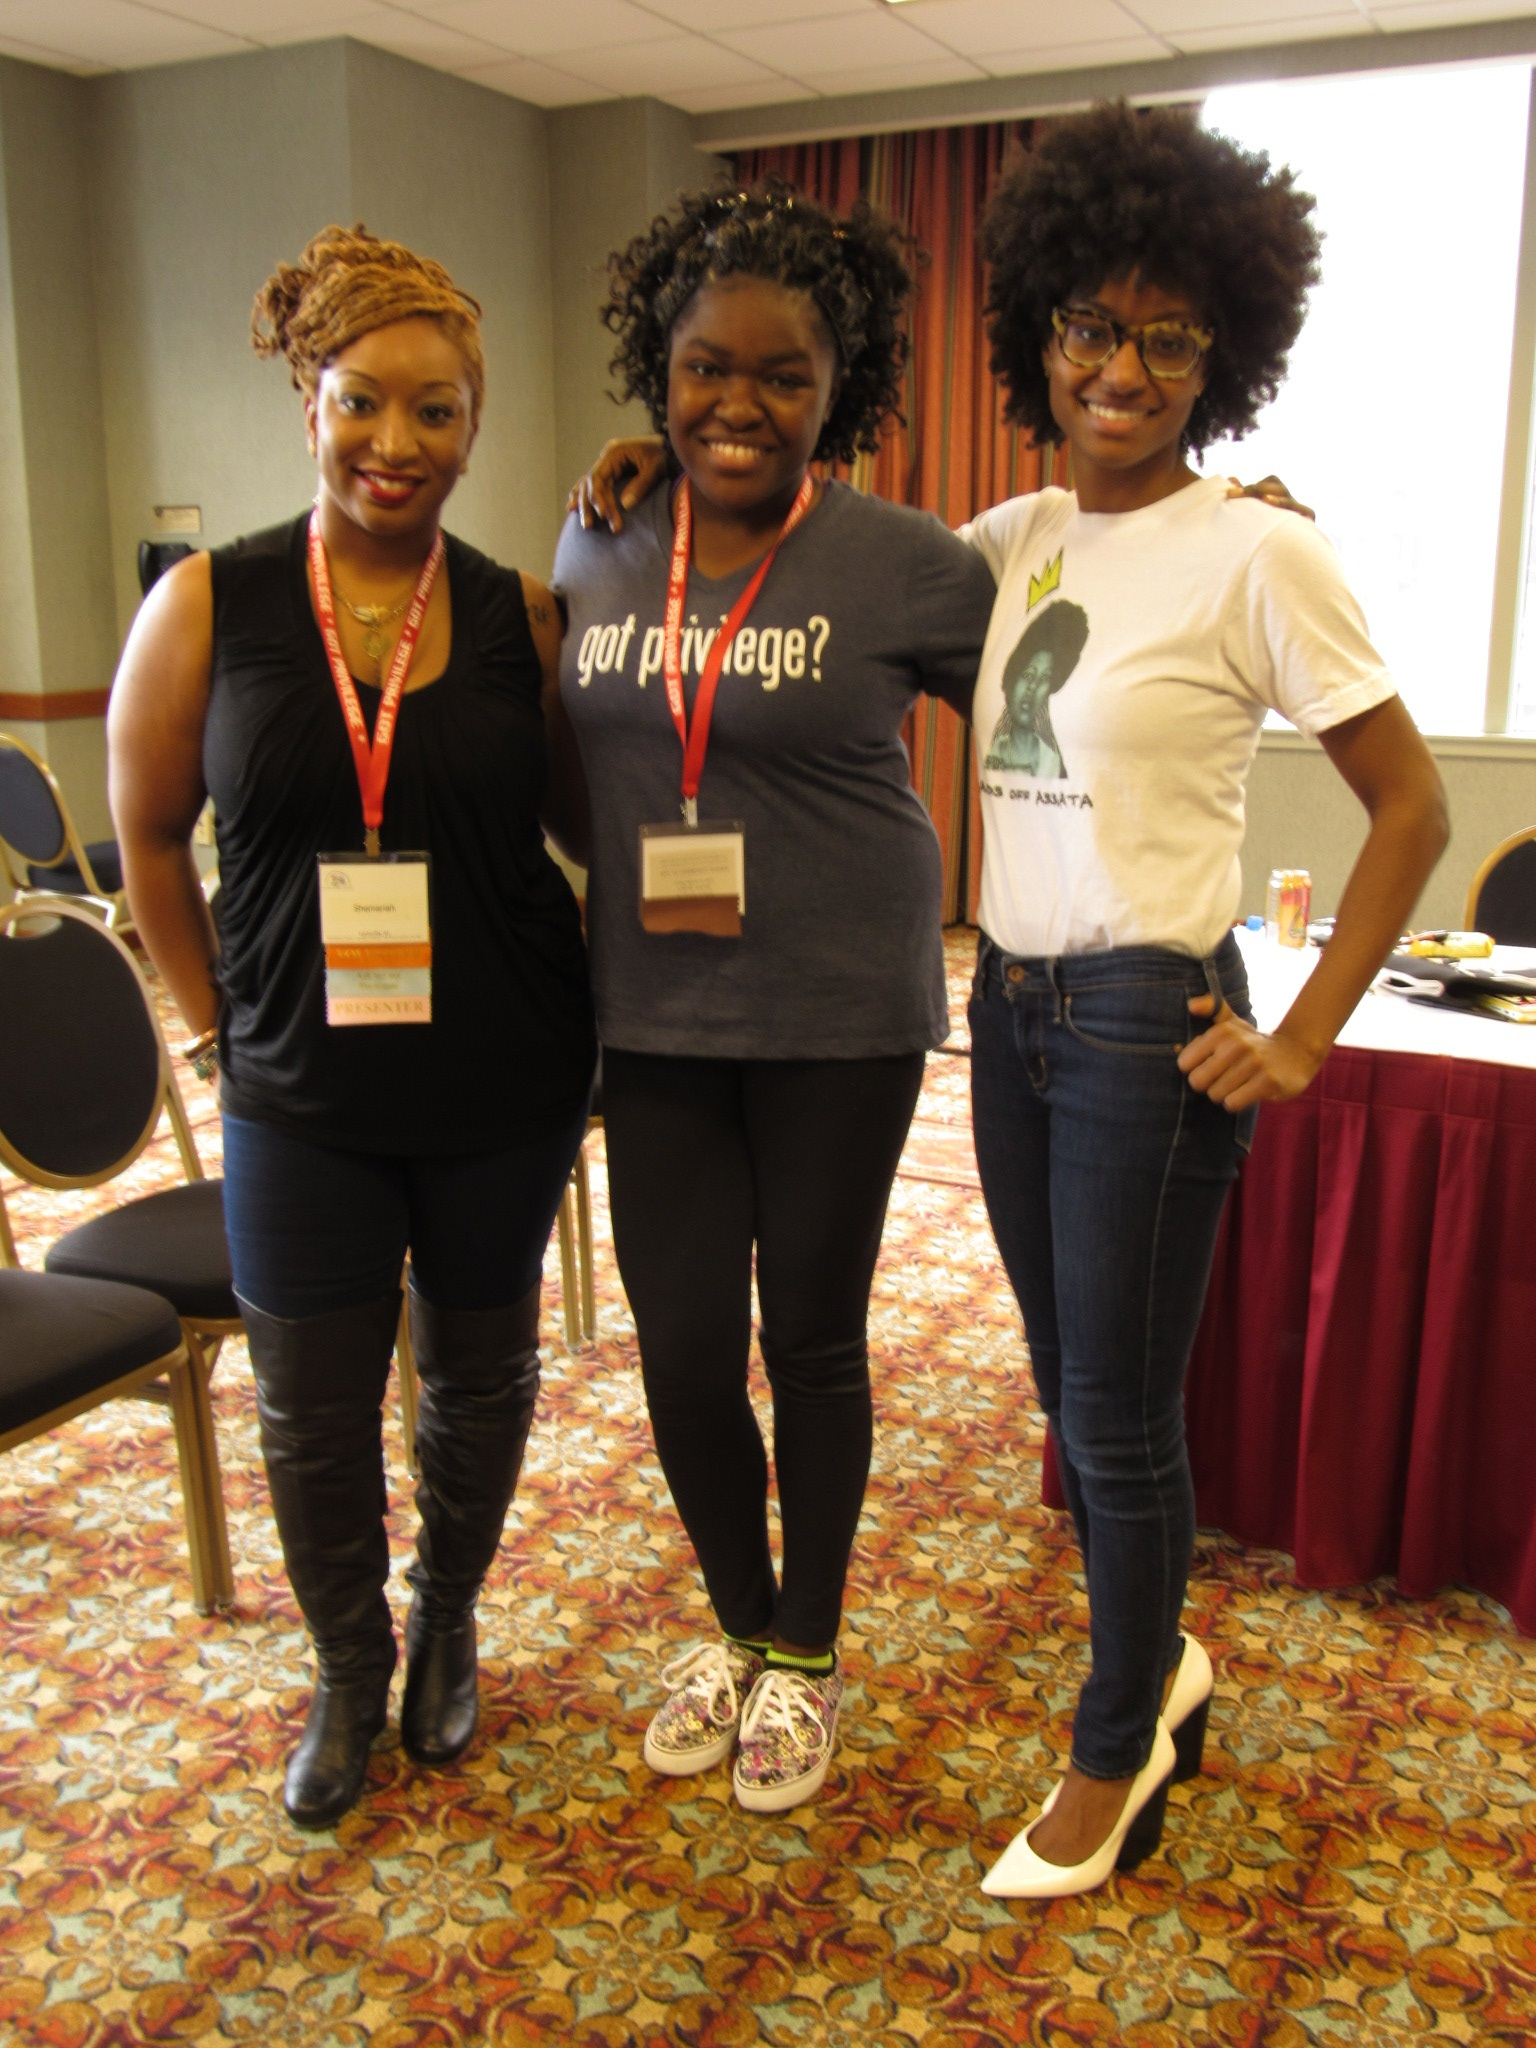 Here I am with the presenters of a workshop I attended at the National White Privilege Conference in March 2015